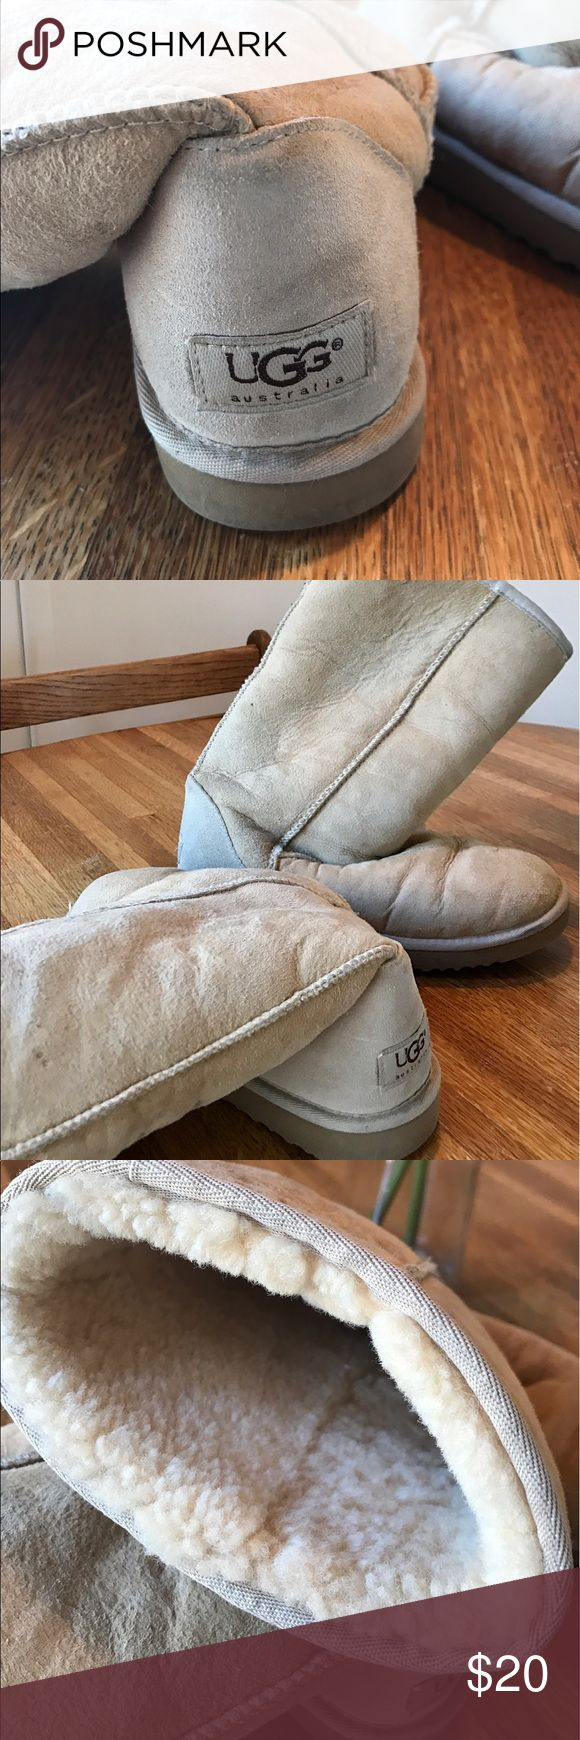 Classic tall Ugg Boots Classic tall Ugg boots. Camel/tan suede. Mostly worn on sand. Great condition. Fully lined in with sheepskin. UGG Shoes Winter & Rain Boots